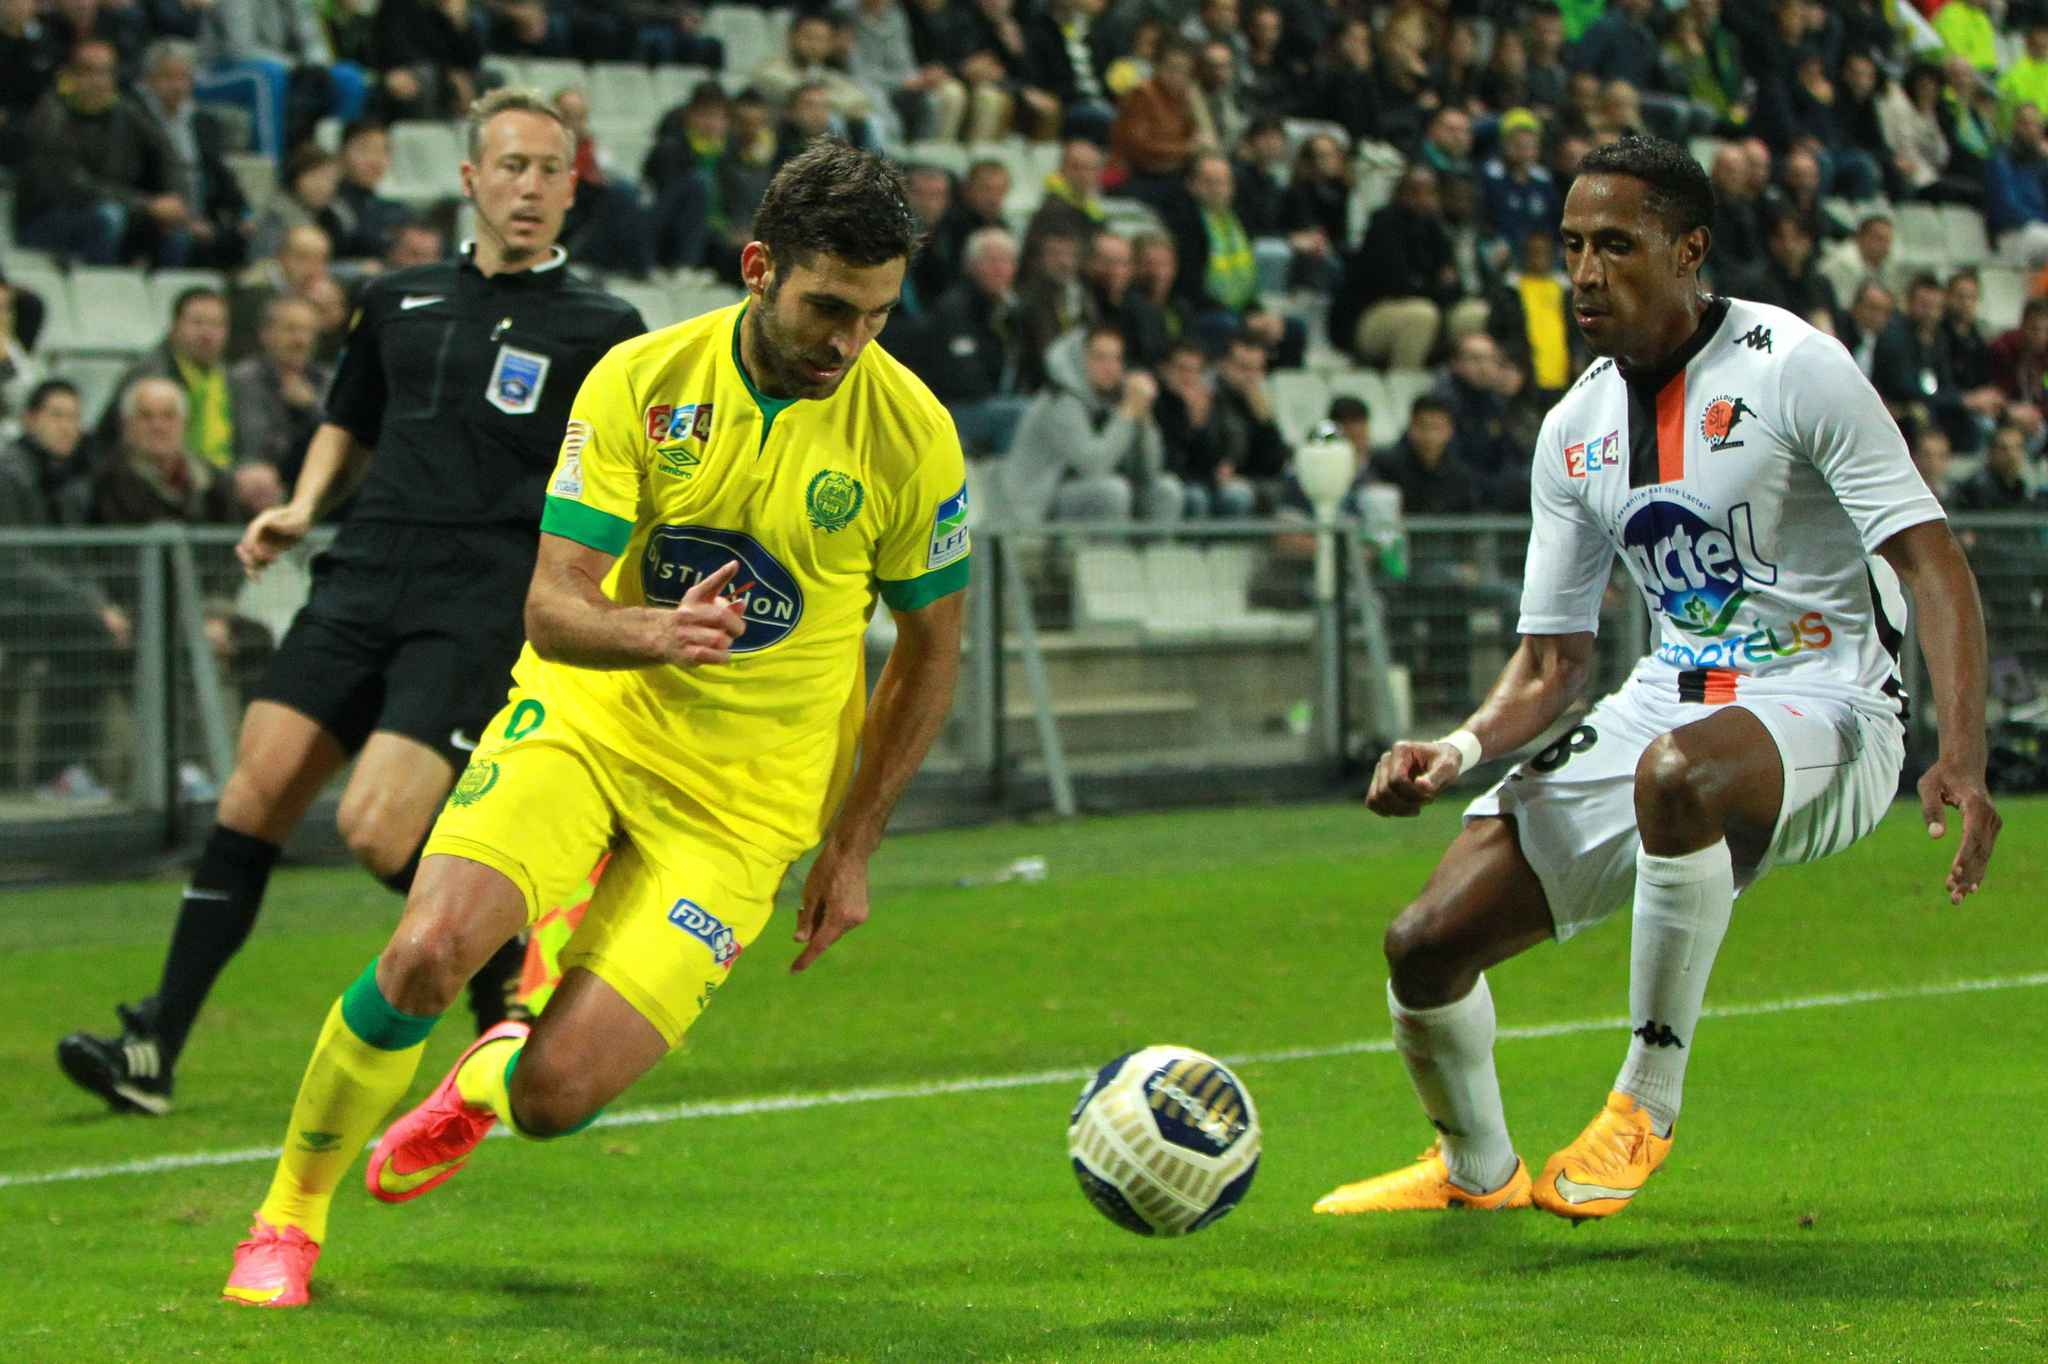 2048x1536-fit_nantes-s-player-itay-shechter-and-laval-s-player-hassane-alla-in-action-during-the-french-league-cup